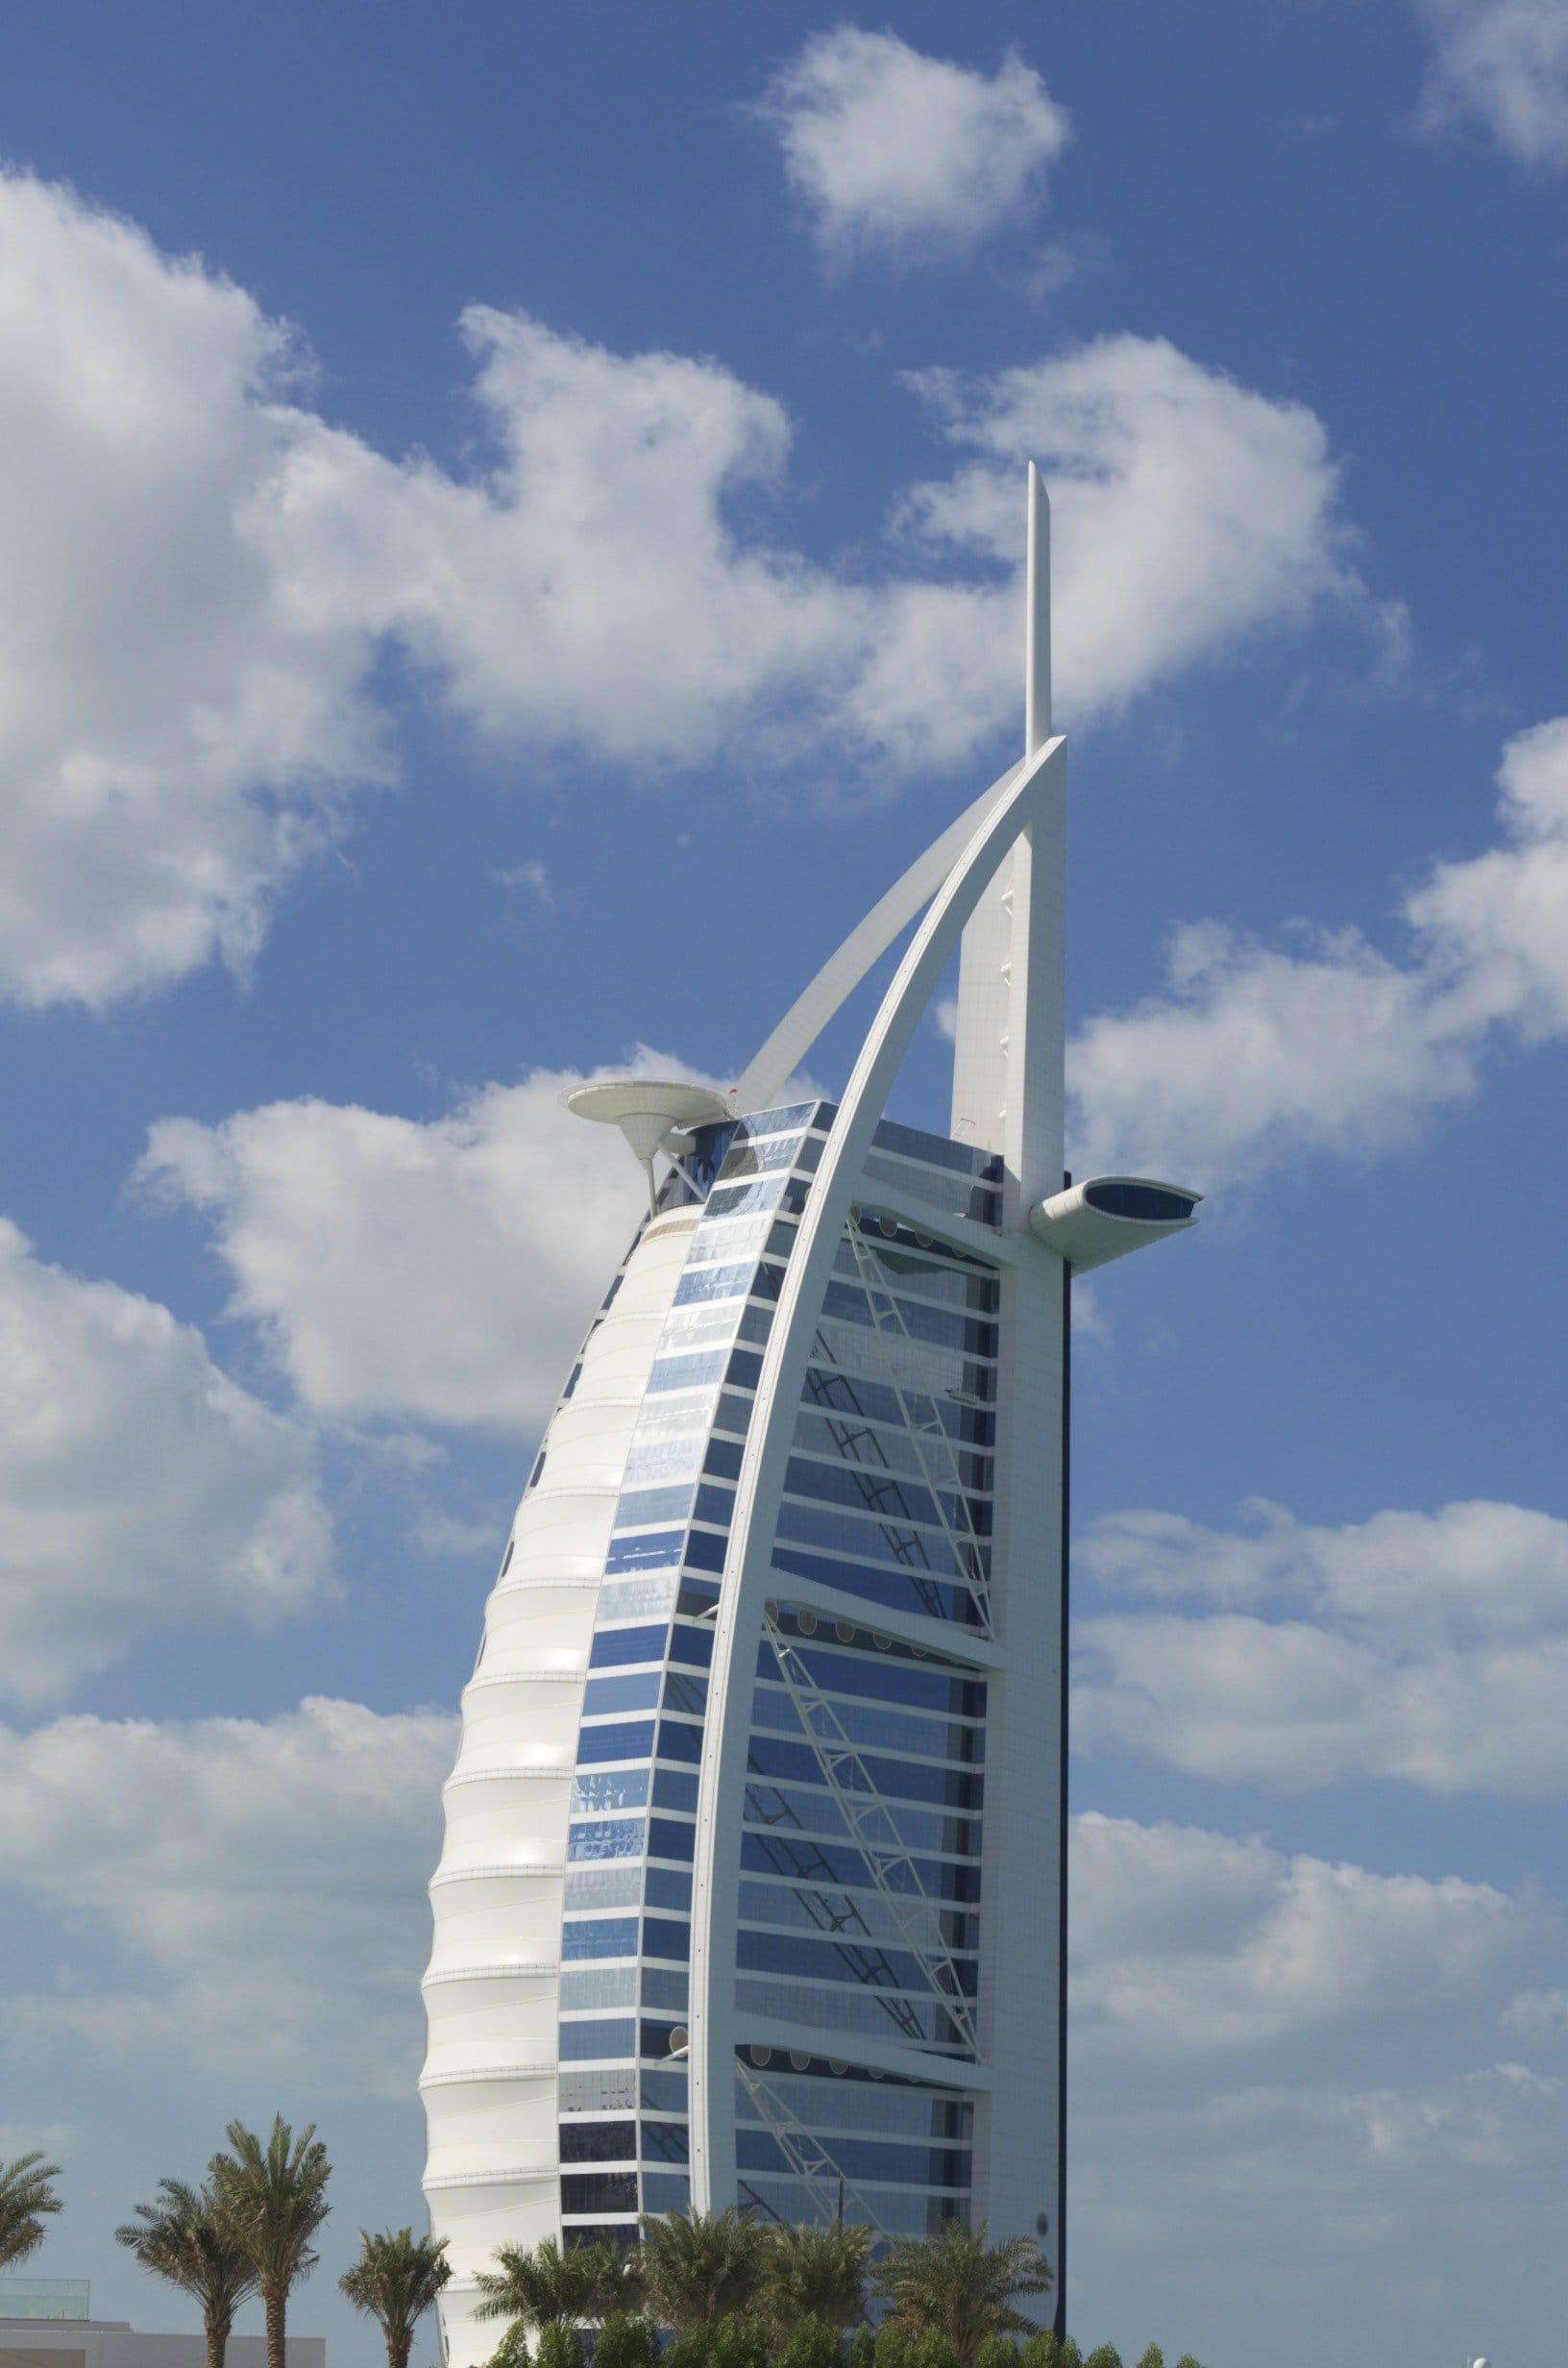 Hotel in Form eines Segels - der Burj al Arab in Dubai